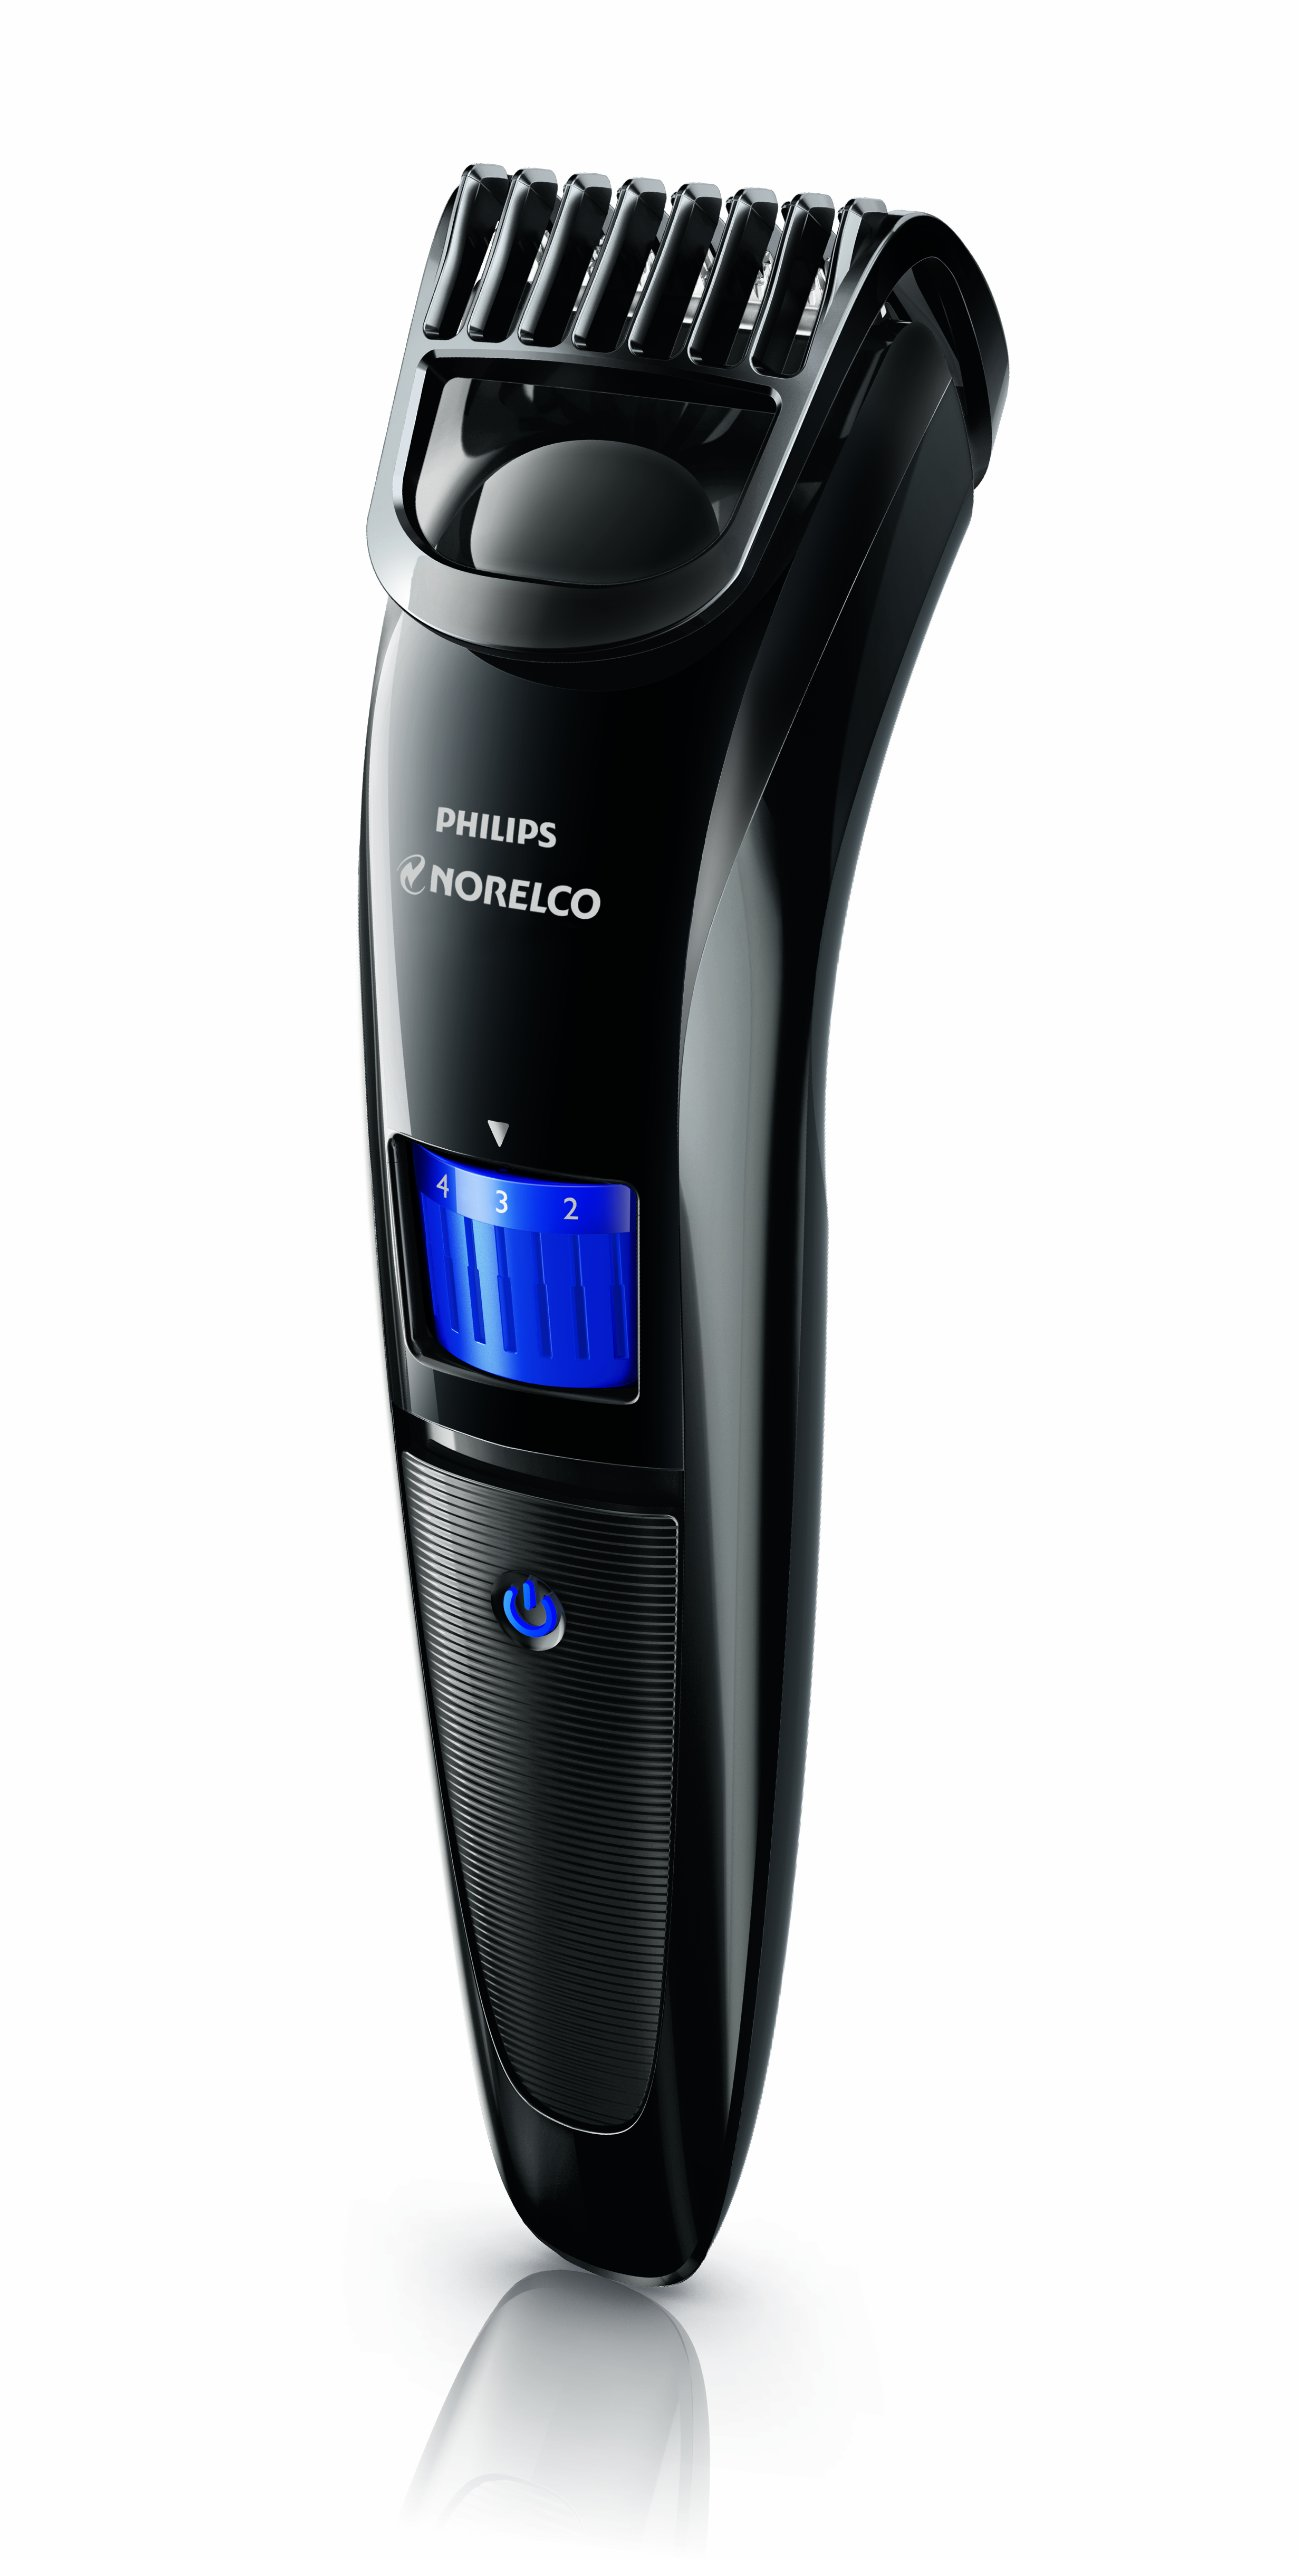 Philips Norelco BeardTrimmer 3100 with adjustable length settings (Model # QT4000/42)